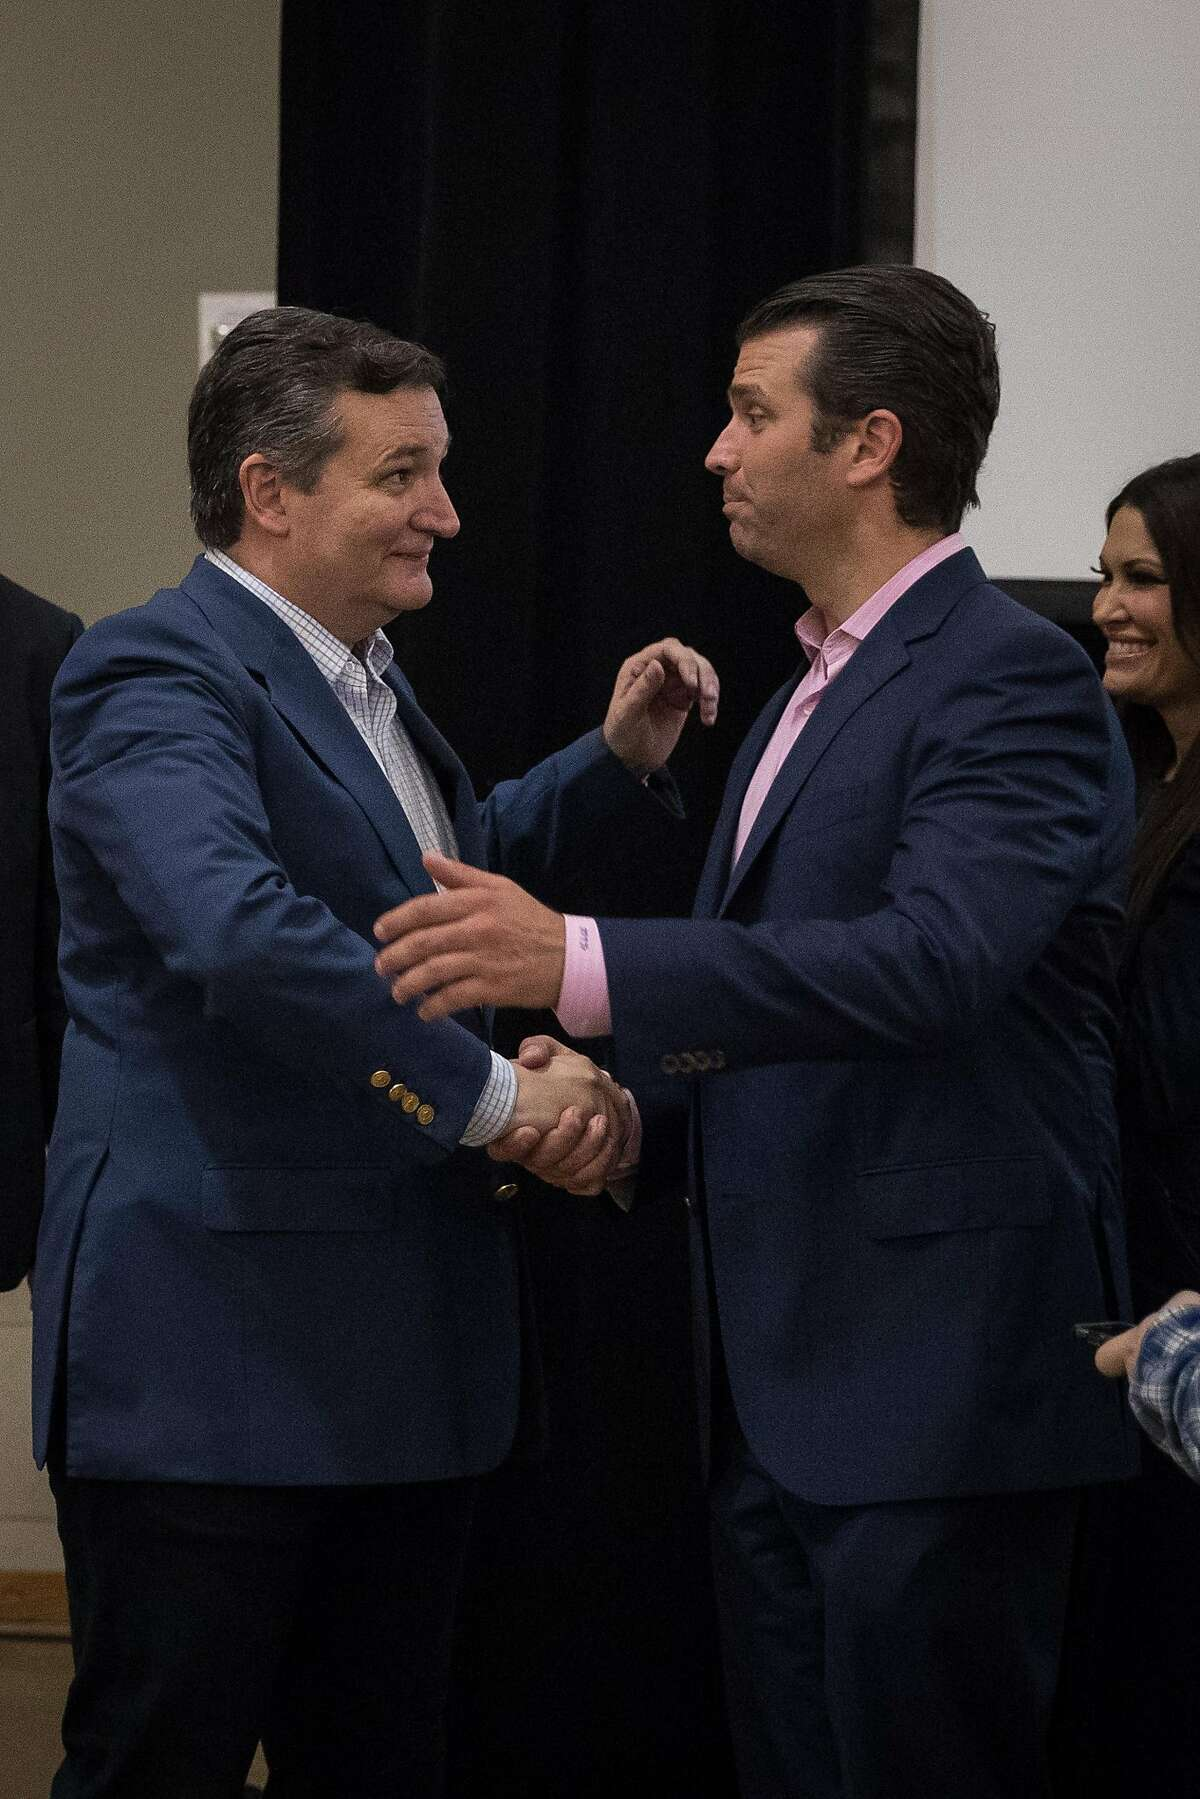 CONROE, TX - OCTOBER 03: U.S. Sen. Ted Cruz (R-TX) shakes hands with Donald Trump Jr. after addressing supporters during a campaign rally on October 3, 2018 in Conroe, Texas. Cruz is in a tight reelection race against Democratic opponent Beto O'Rourke. (Photo by Loren Elliott/Getty Images)